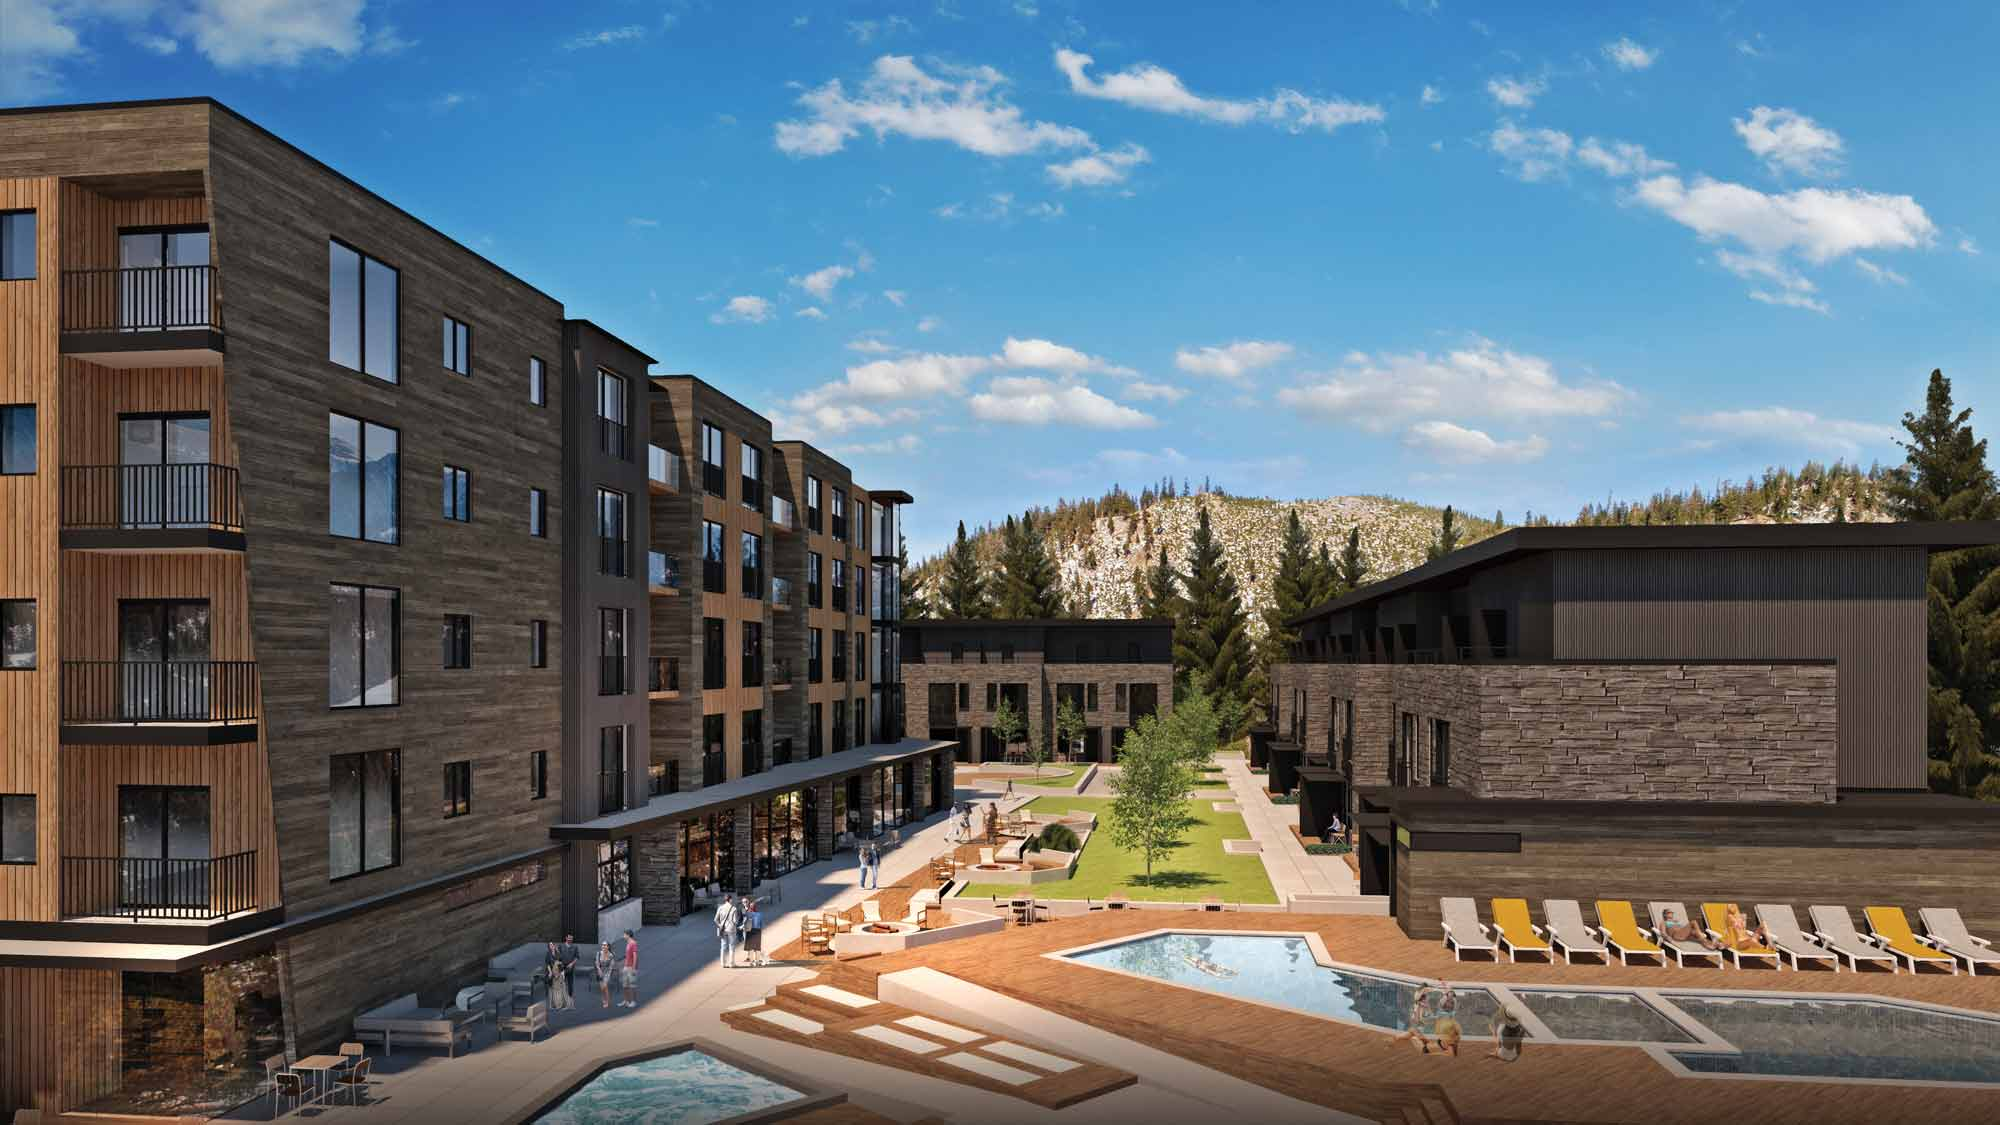 YotelPAD Mammoth Lakes Outdoor Area and Pool Rendering